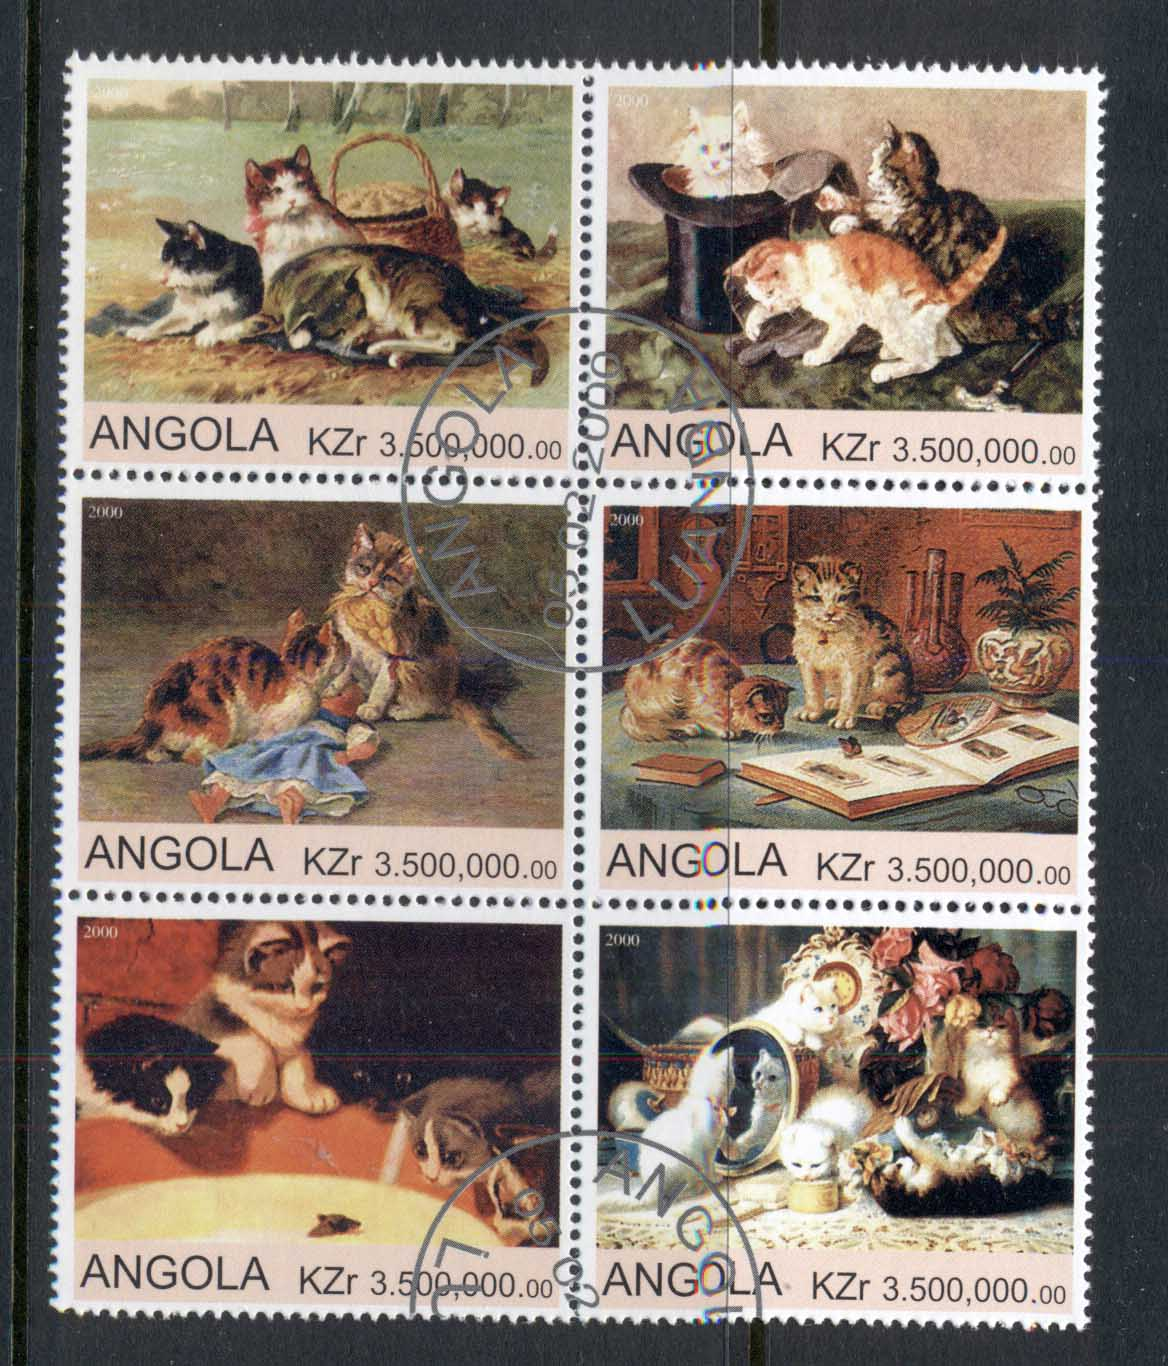 Angola 2000 Cat paintings blk6 (rebel Issue) CTO